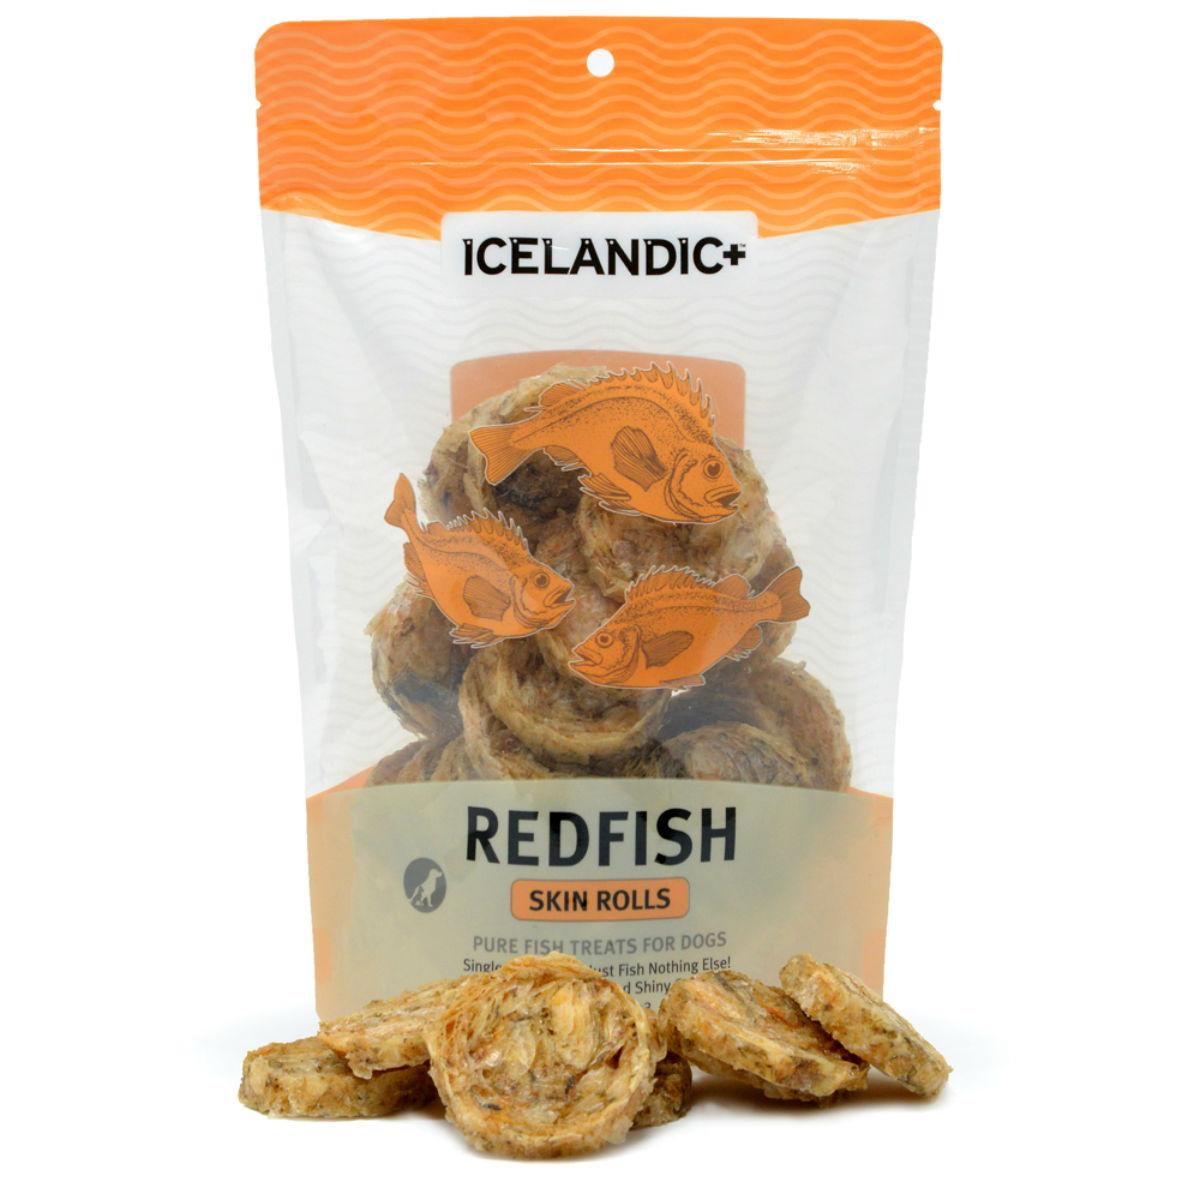 Redfish Skin Rolls Dog Treats by Icelandic+